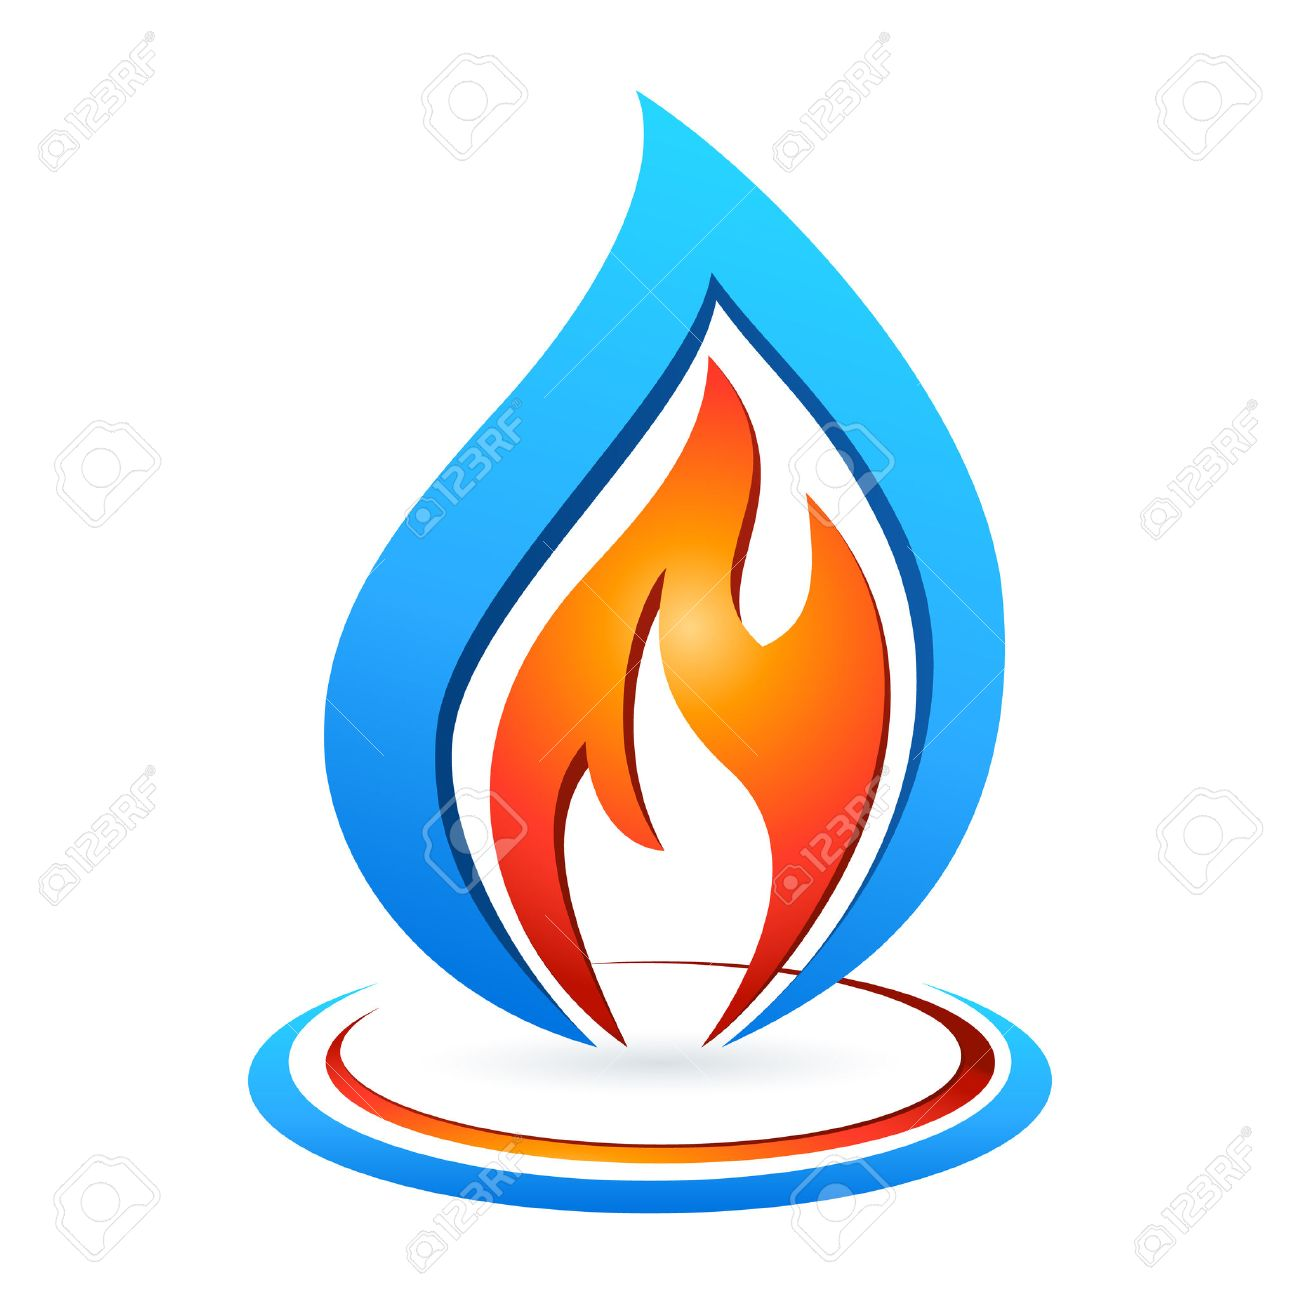 Fire and water royalty free cliparts vectors and stock fire and water stock vector 26041442 biocorpaavc Choice Image